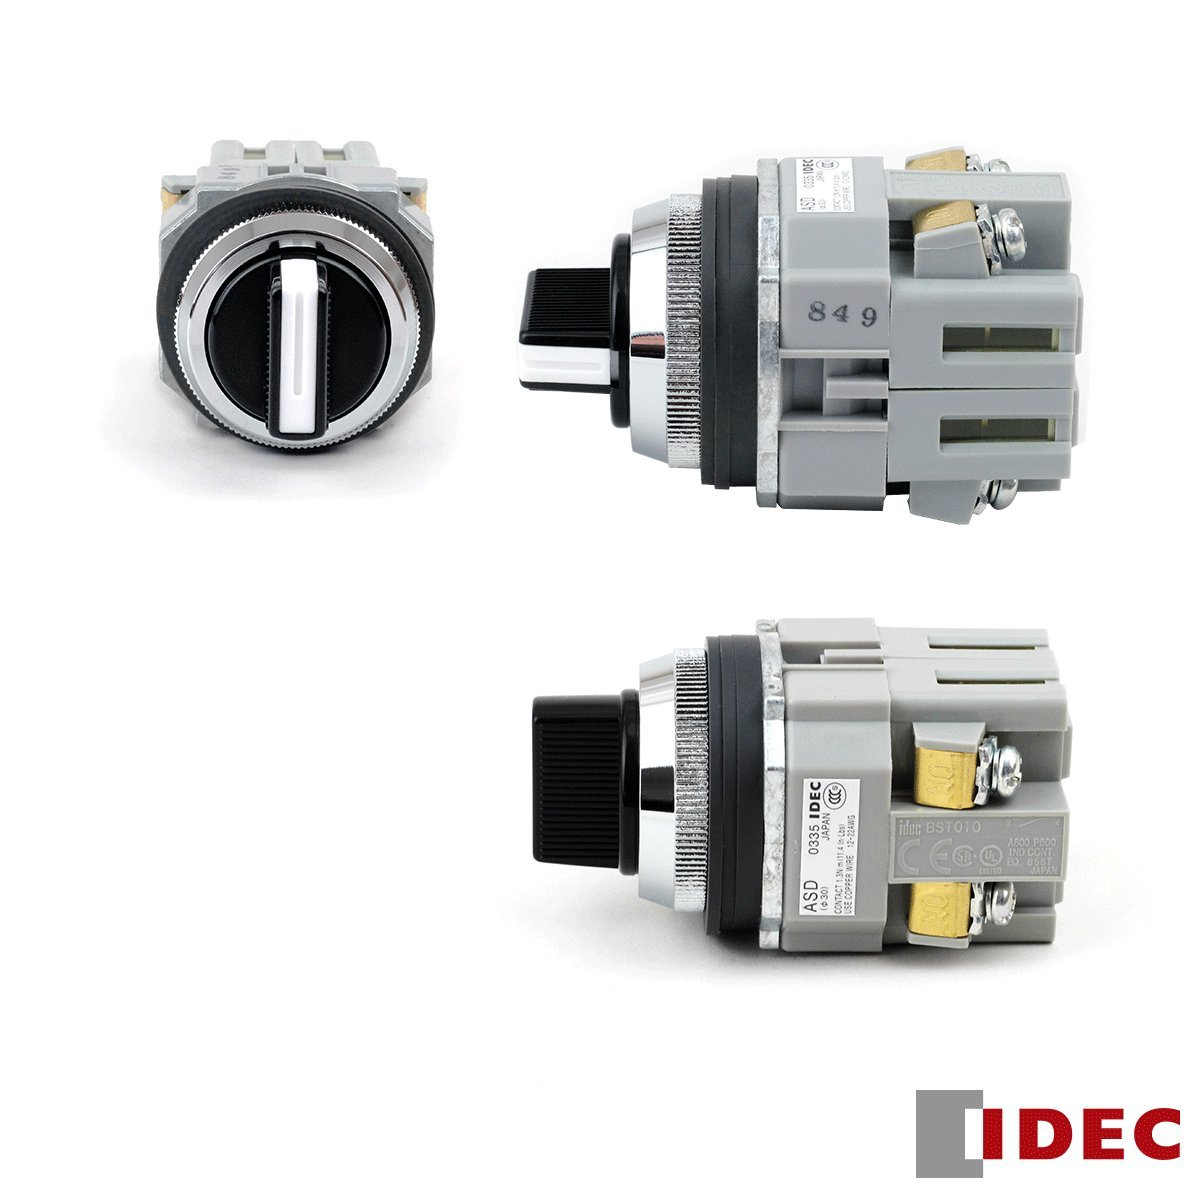 Idec Asd3320n Switch Selector Dpst 2no 10a 250v 8 Pin Relay Wiring Diagram Industrial Scientific